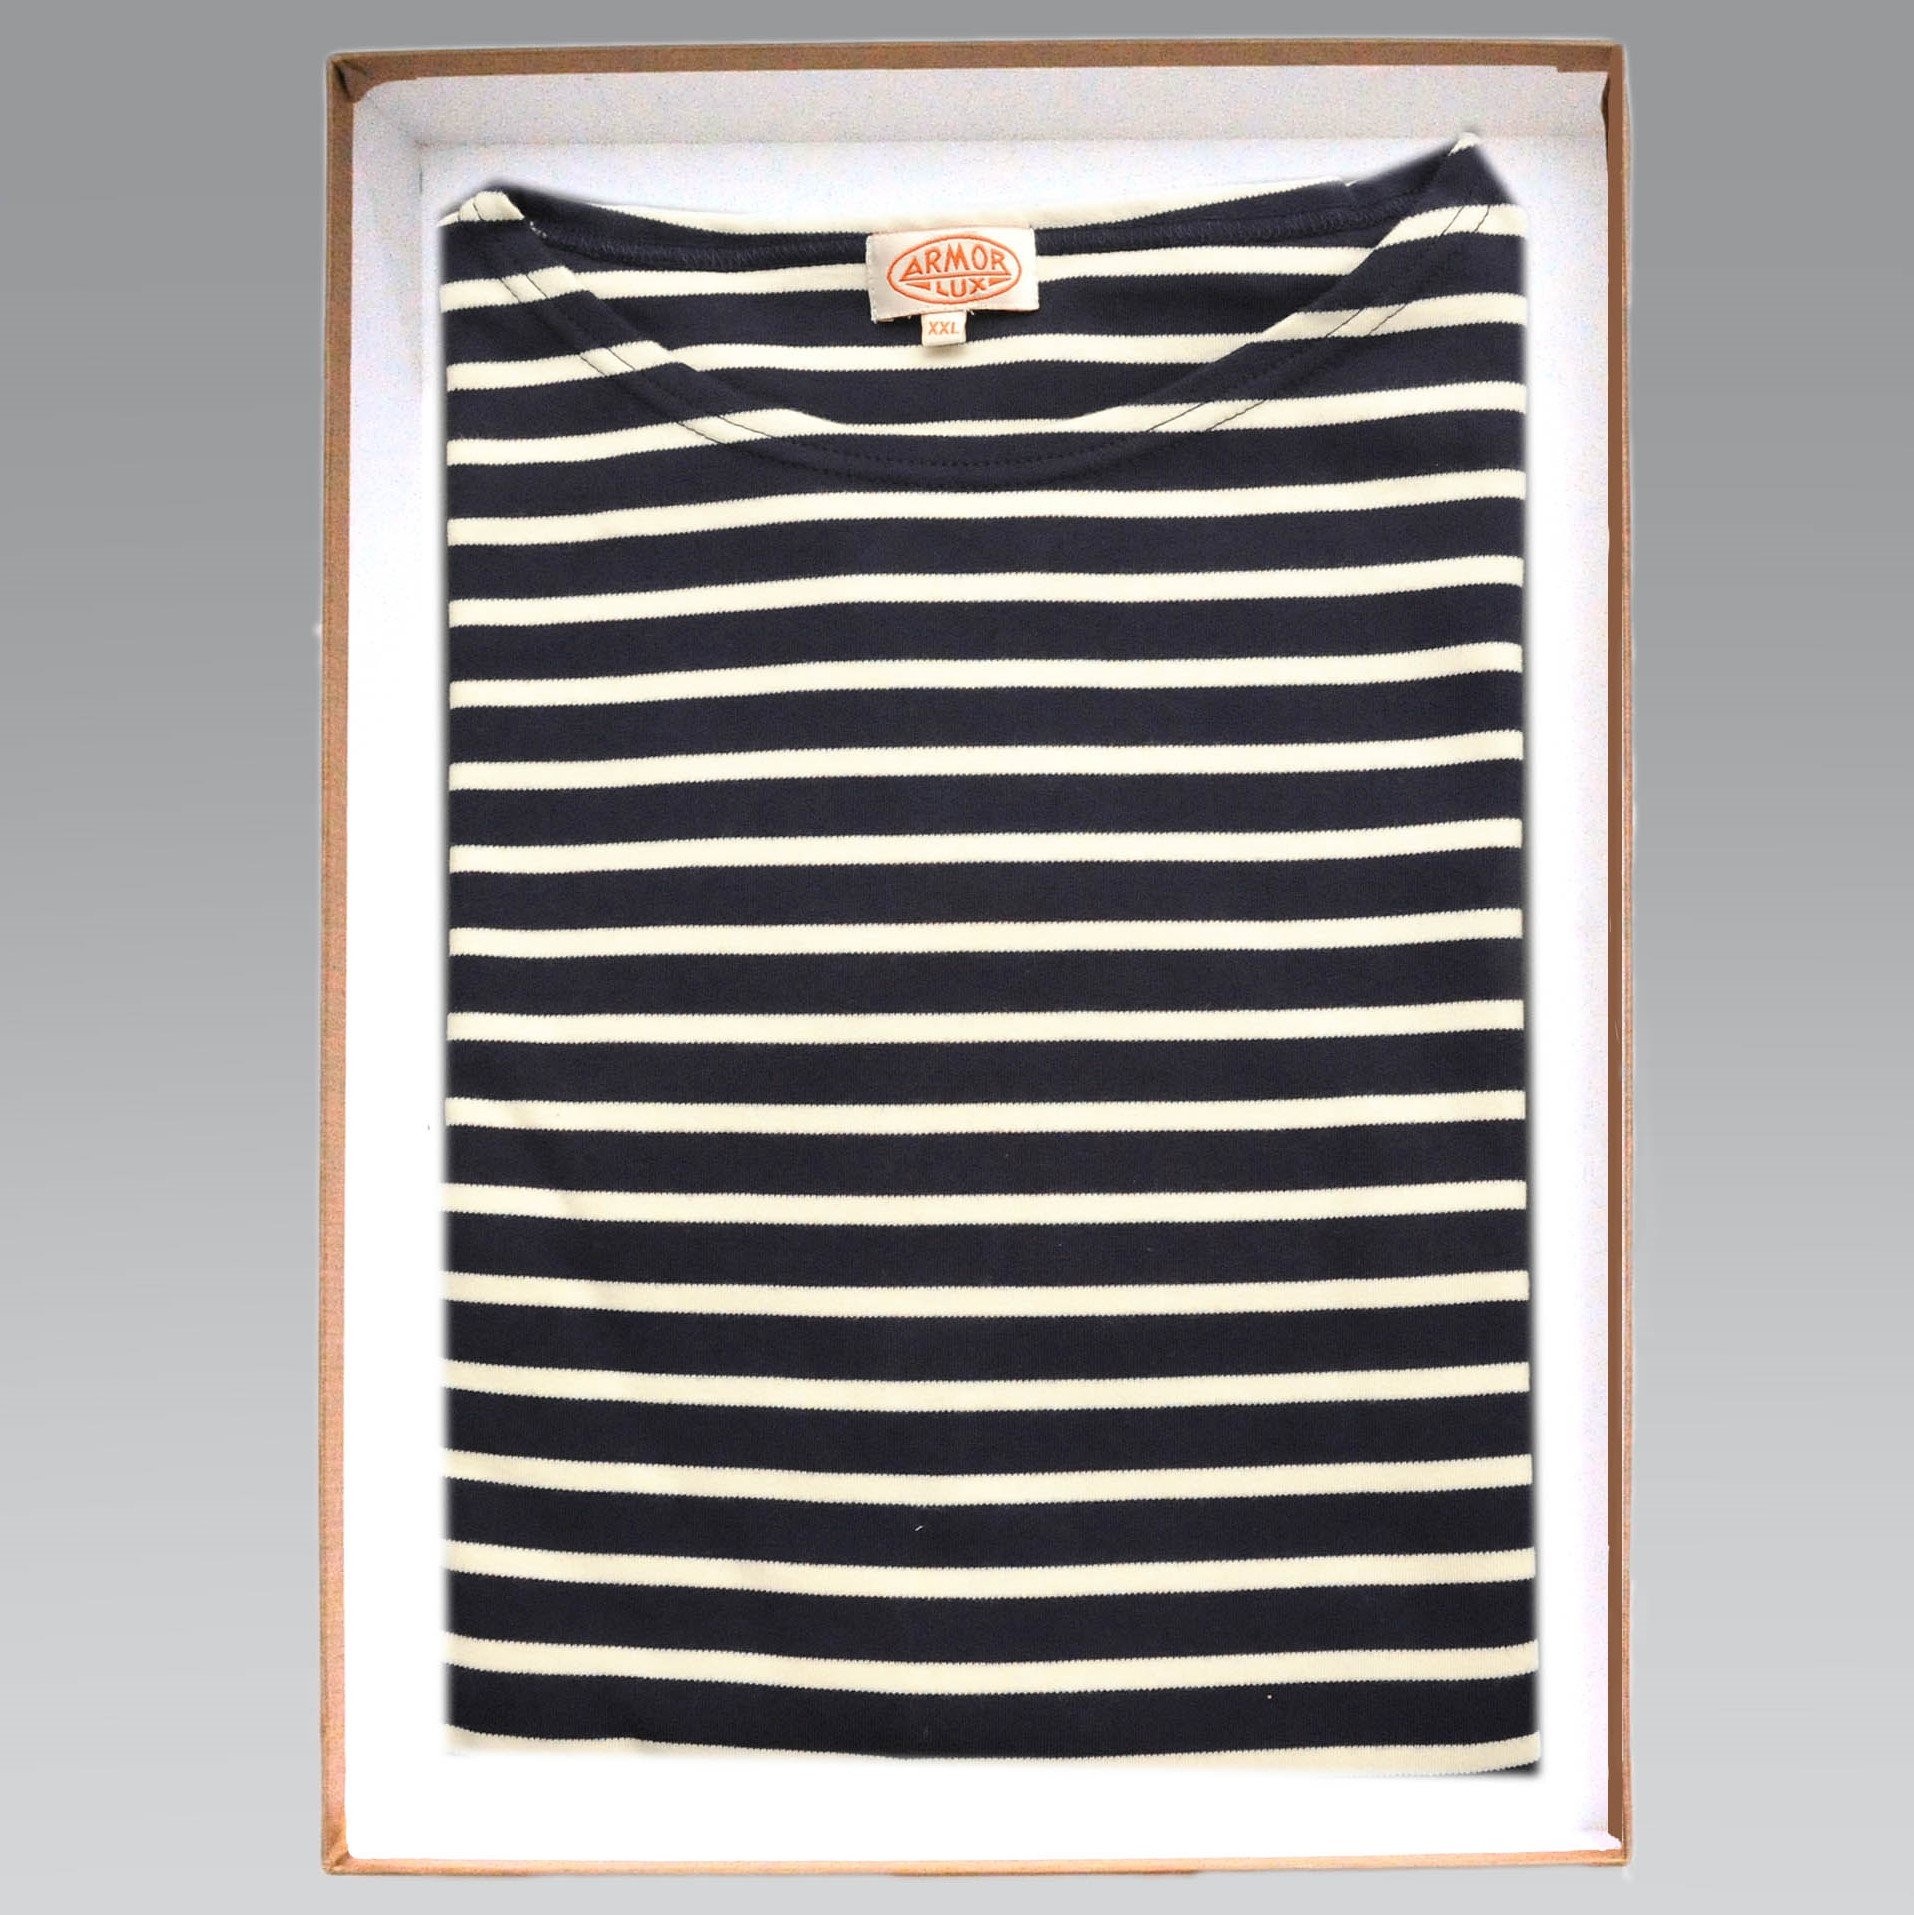 1a32a4ce57 Armor Lux – Fitted Long Sleeve Cotton Breton Striped Shirt in Navy & Ecru